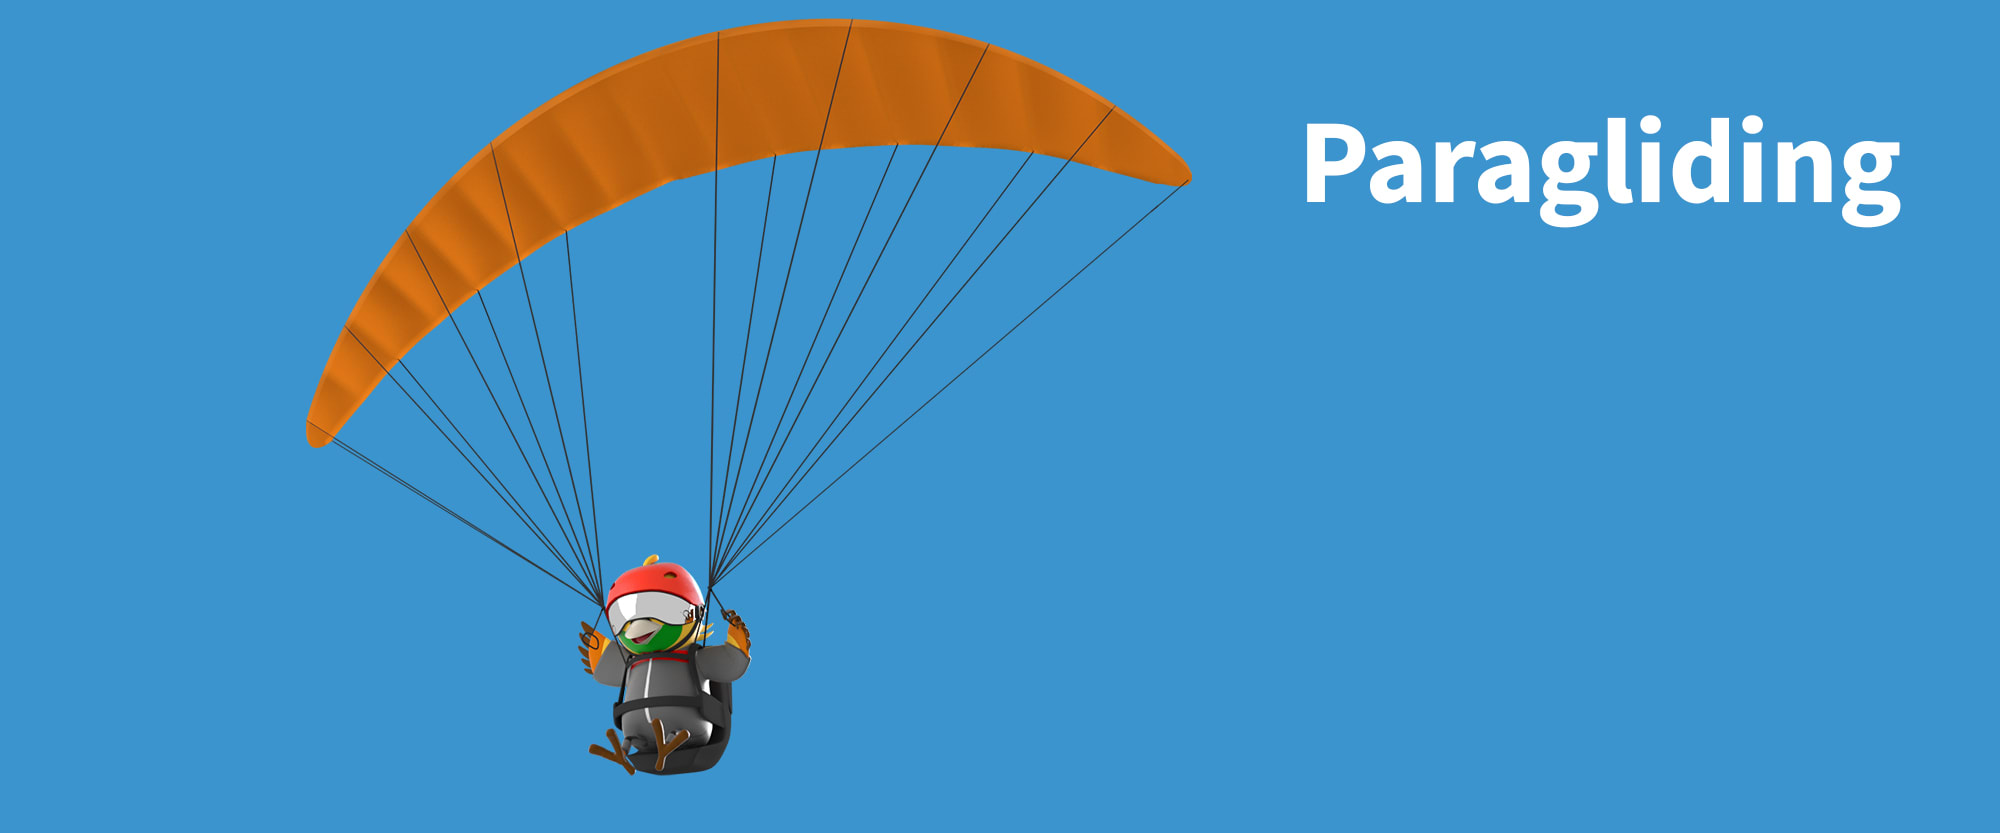 paragliding di asian games 2018